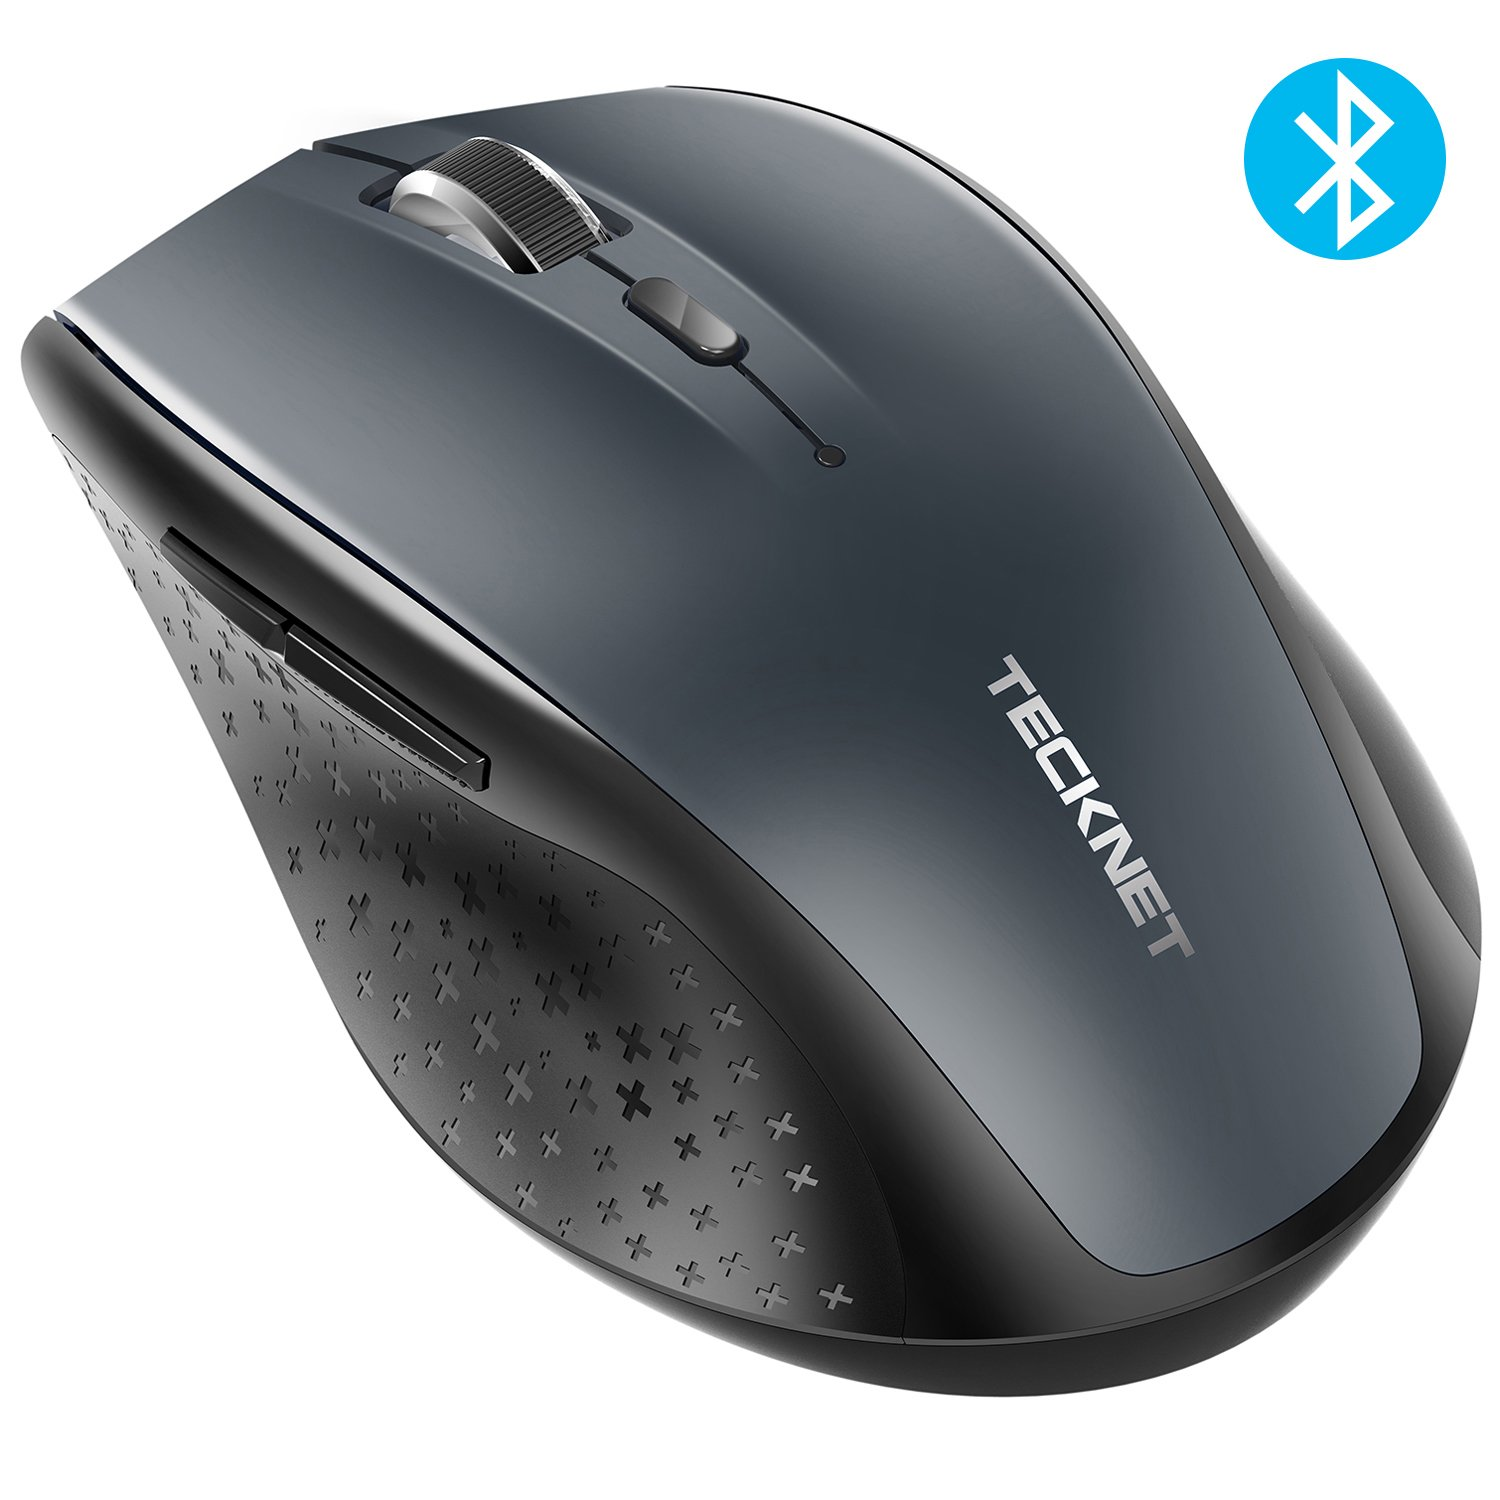 TeckNet Bluetooth Wireless Mouse, Grey (BM308) by TECKNET